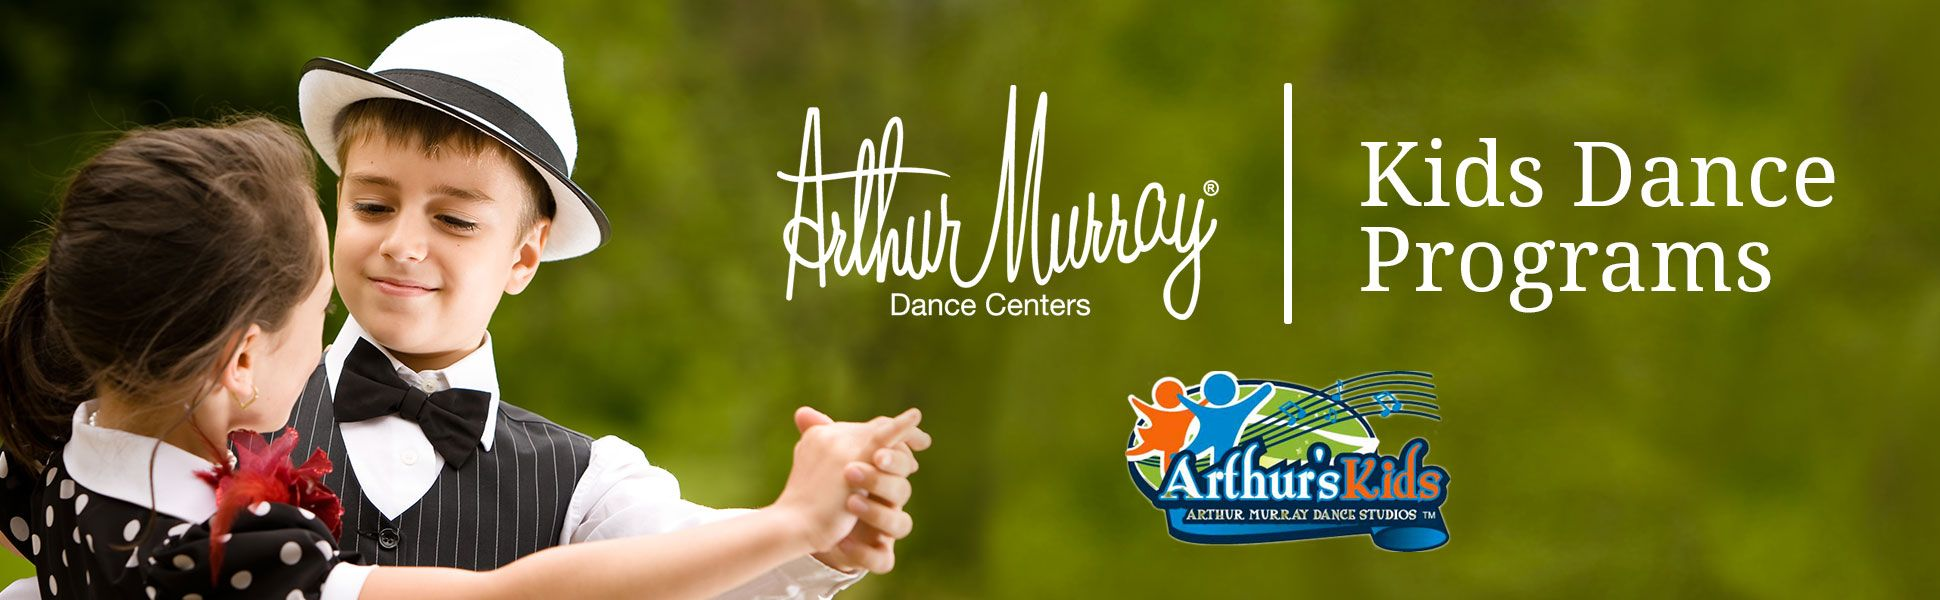 Arthur Murray Kids Dance Lessons